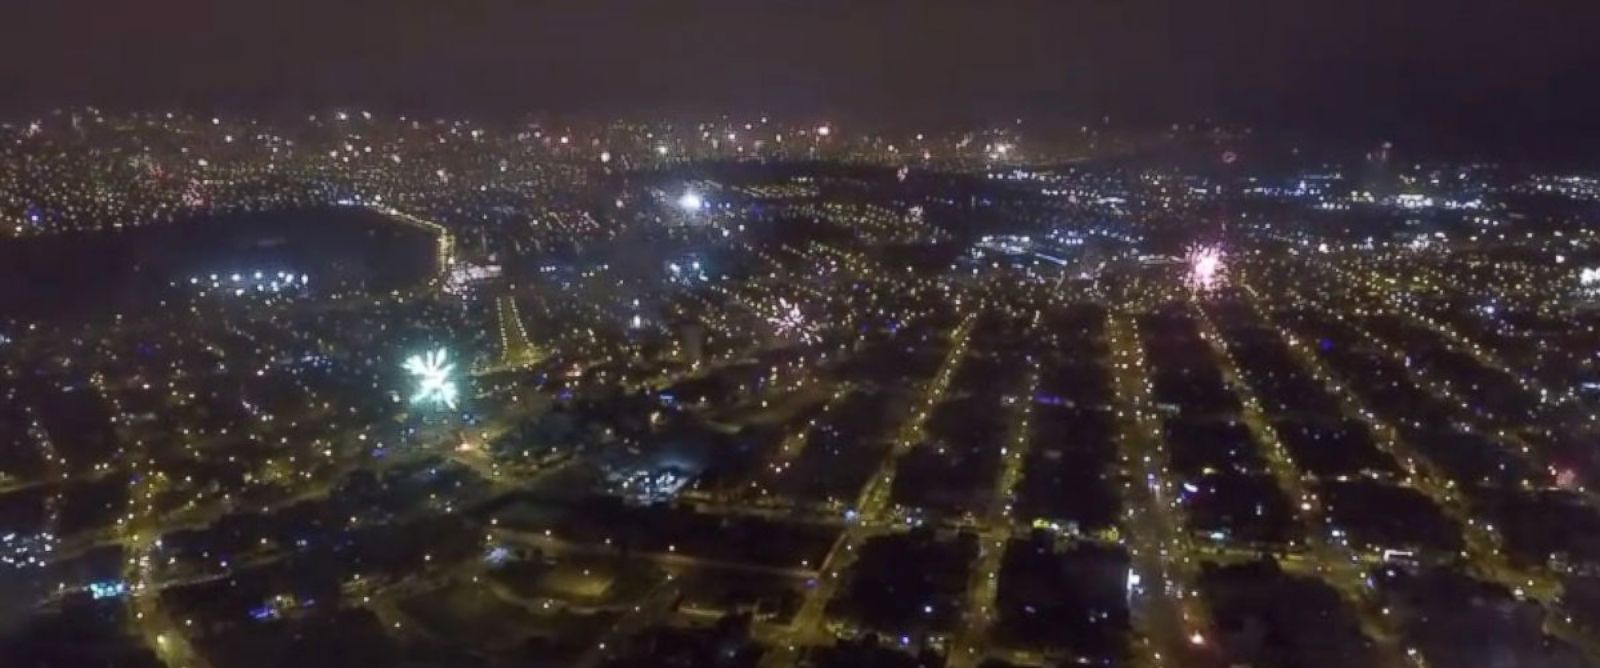 PHOTO: This image was shot from a drone showing hundreds of fireworks going off on New Years Eve, Dec. 31, 2015 in Lima, Peru.